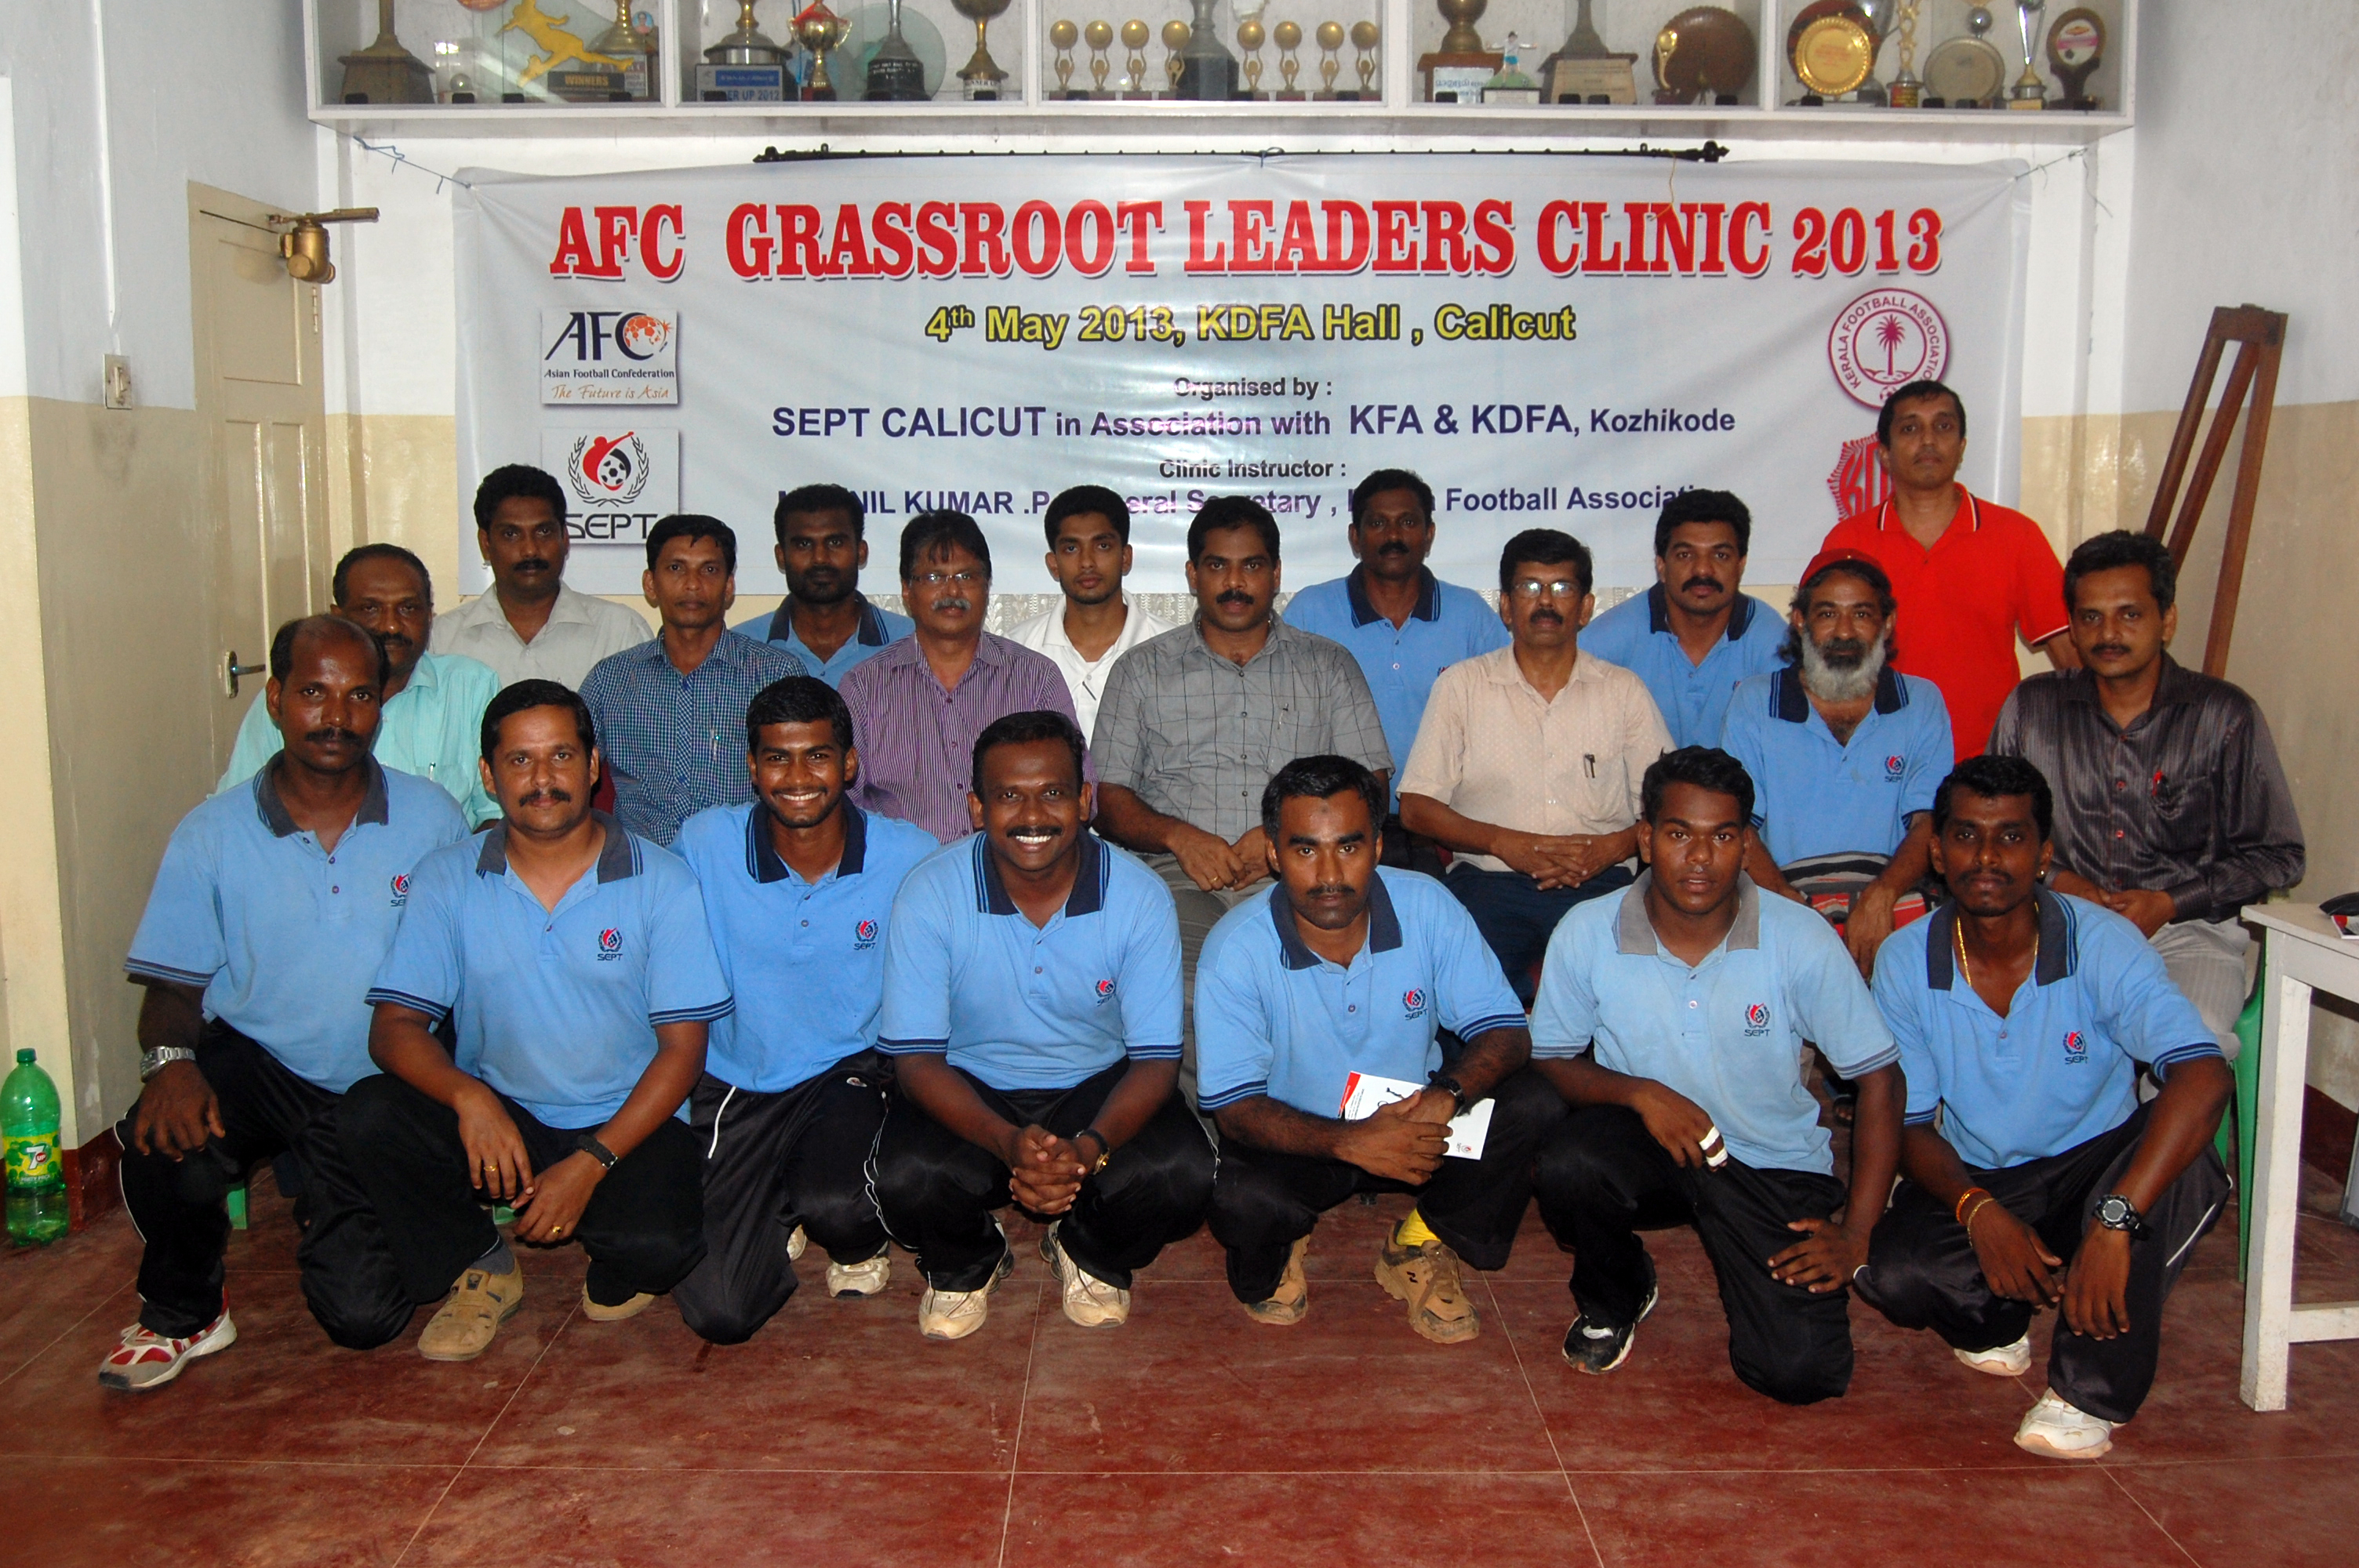 AFC GRASS ROOT LEADERS CLINIC 2013